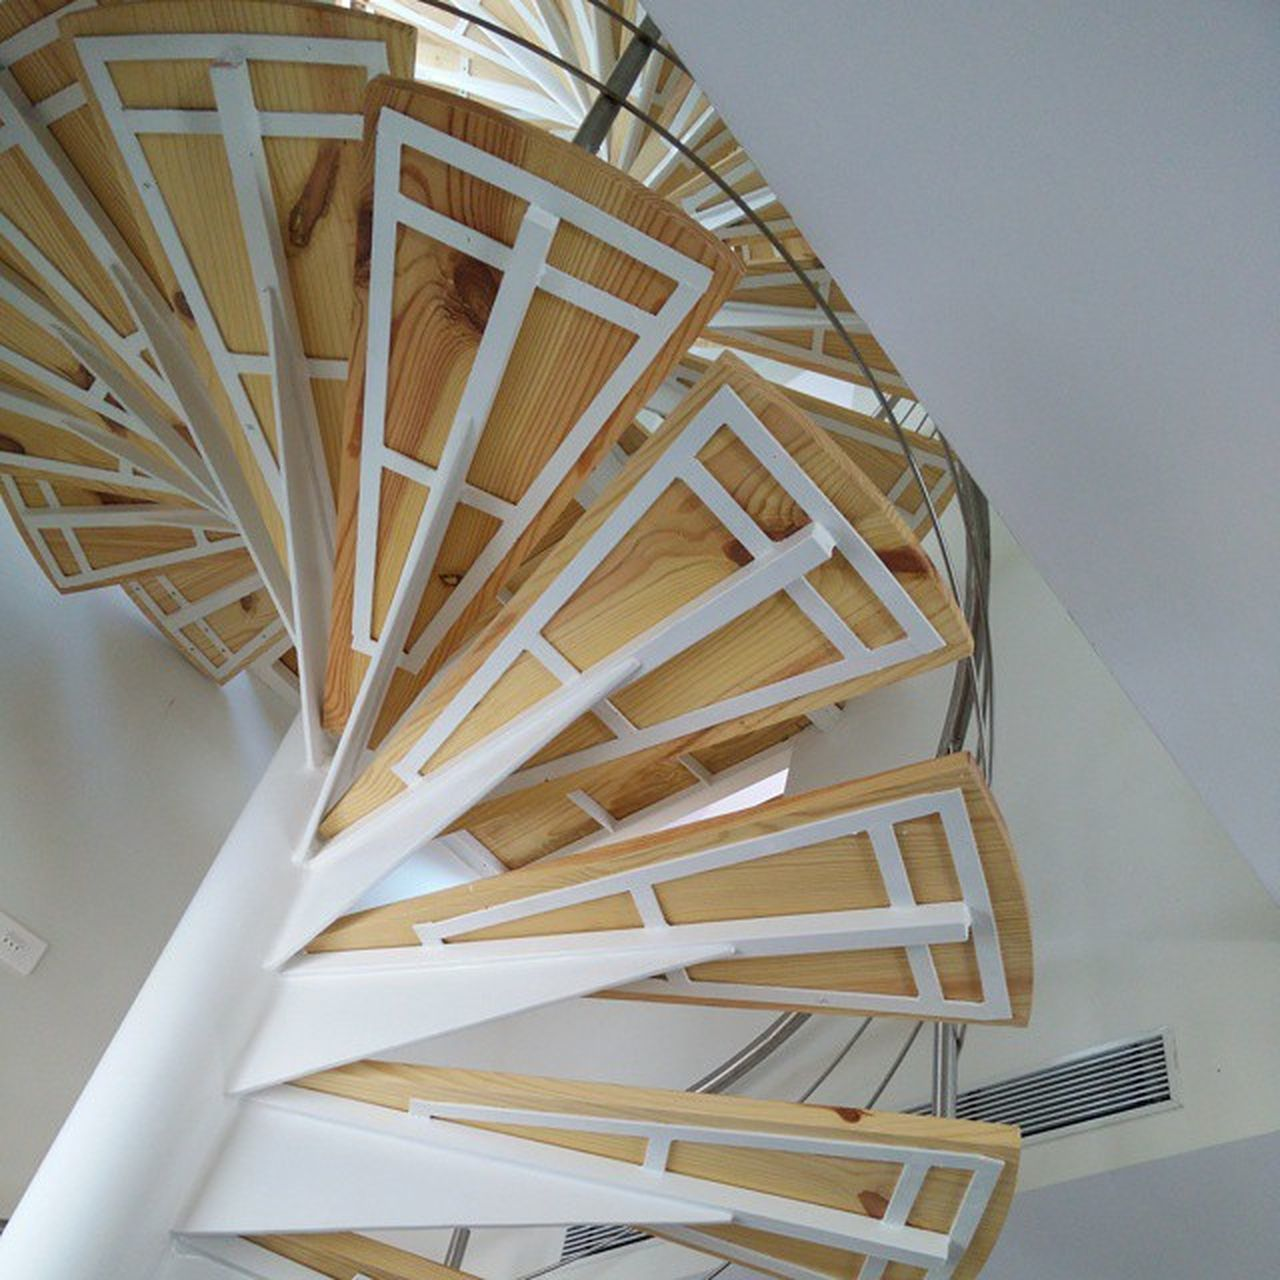 staircase, steps and staircases, steps, no people, indoors, architecture, railing, spiral, built structure, spiral stairs, low angle view, close-up, spiral staircase, day